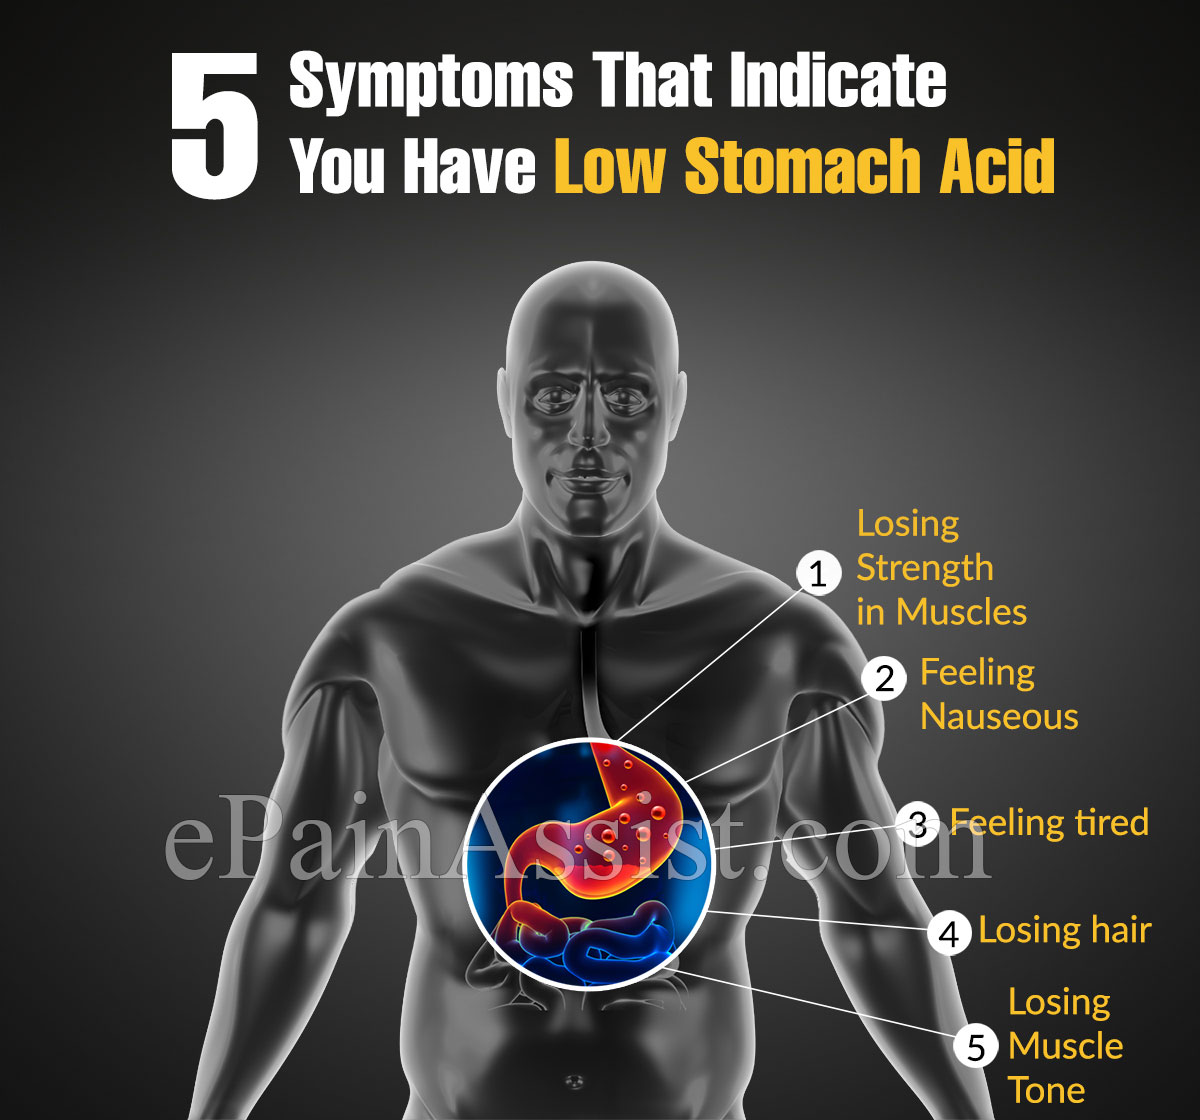 5 Symptoms That Indicate You Have Low Stomach Acid